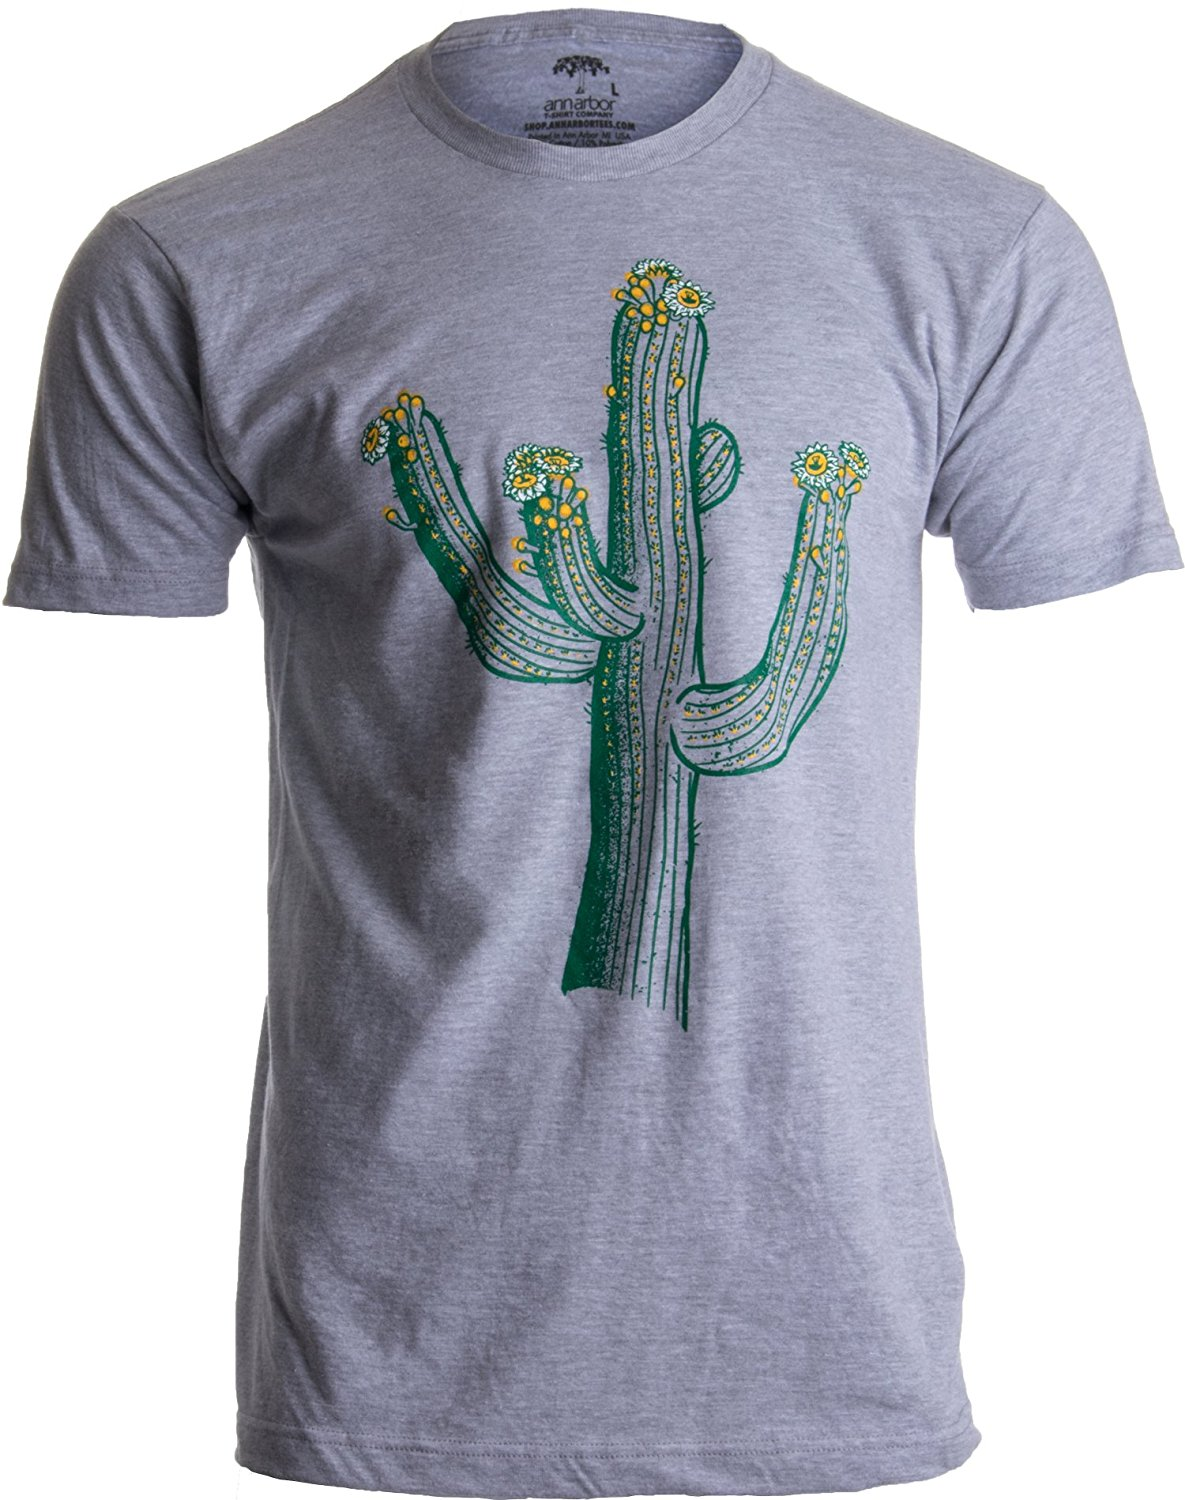 Ann Arbor T-shirt Co. Saguaro Cactus Art  Southwest Line Art, Western Nature Print Mens T-shirt